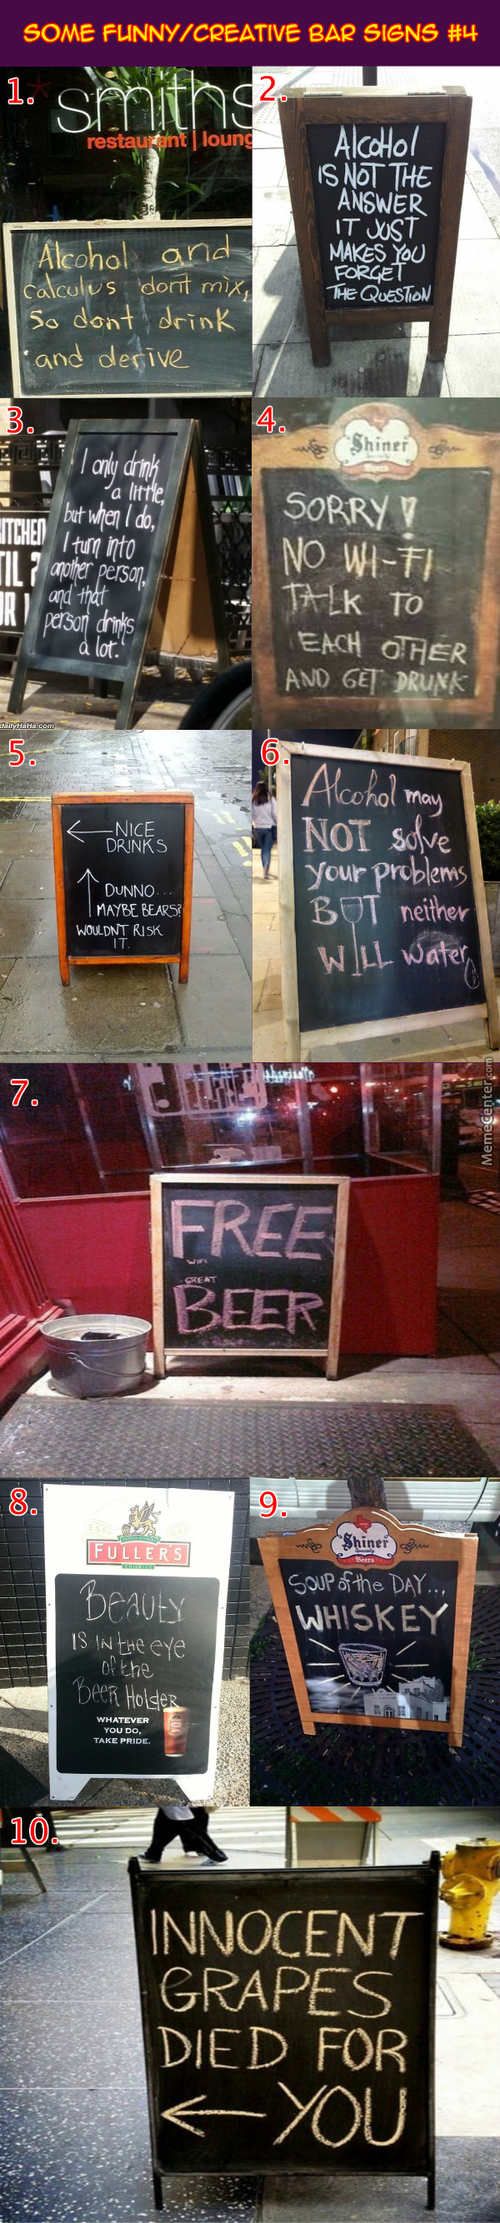 Funny / Creative Bar Signs #4: If The Grapes Had Died For Us, Can It Revive After Three Days?